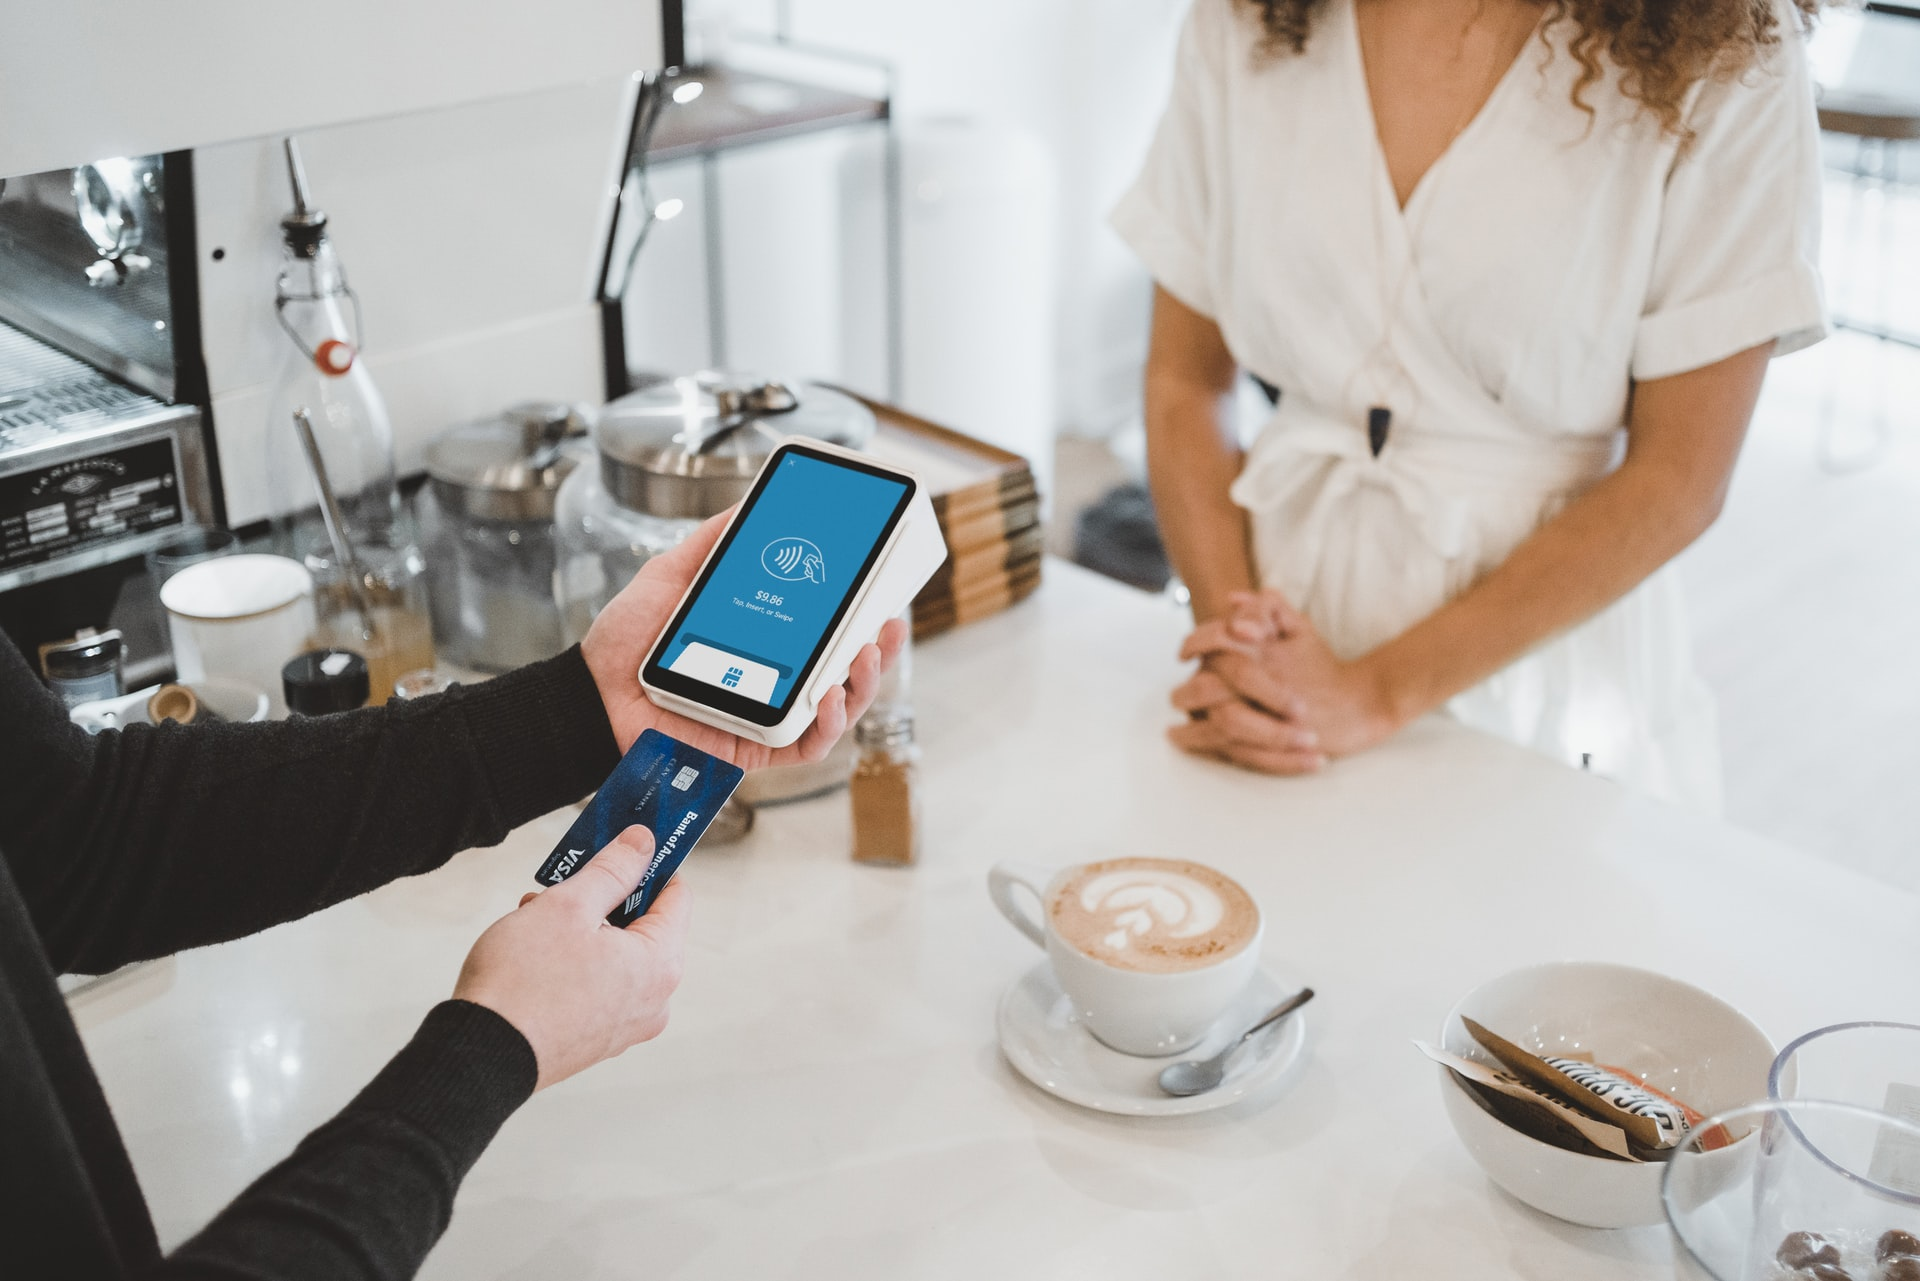 credit card being used at a coffee shop